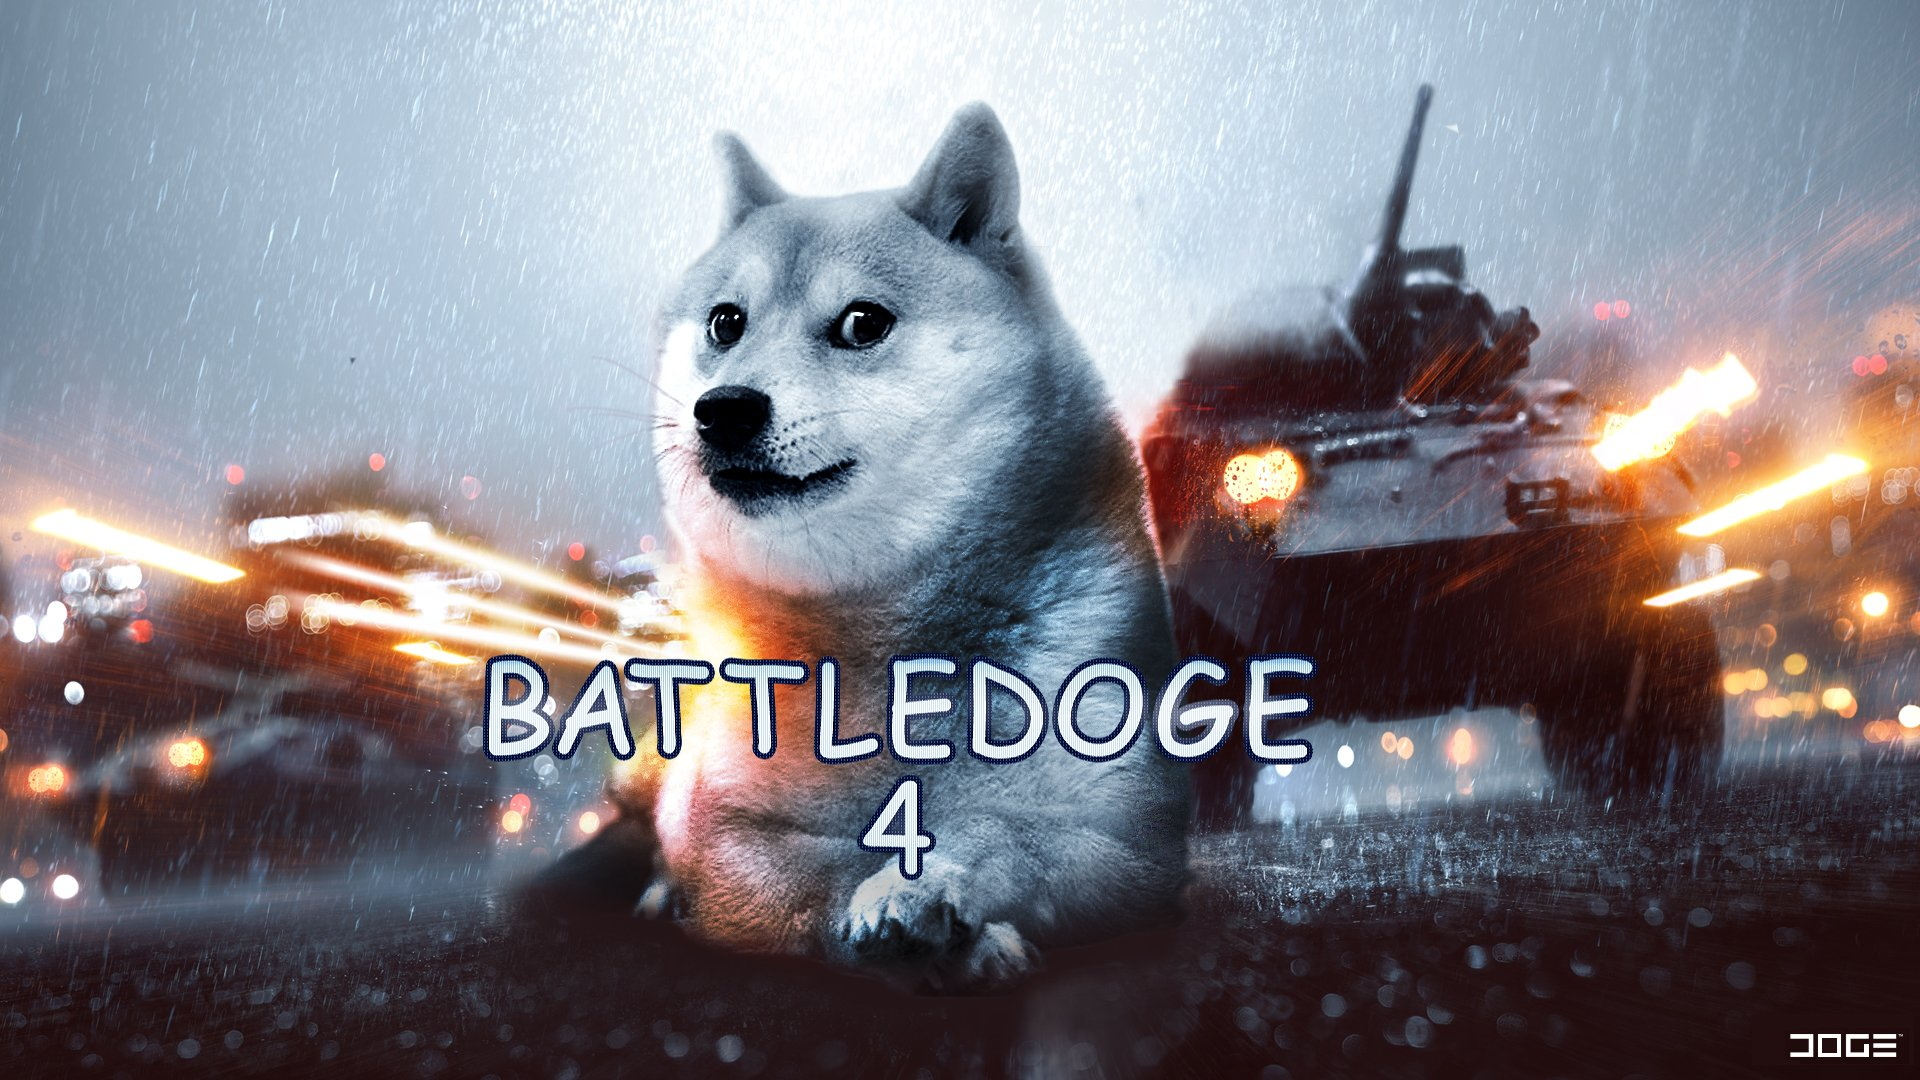 call of doge wallpaper - photo #23